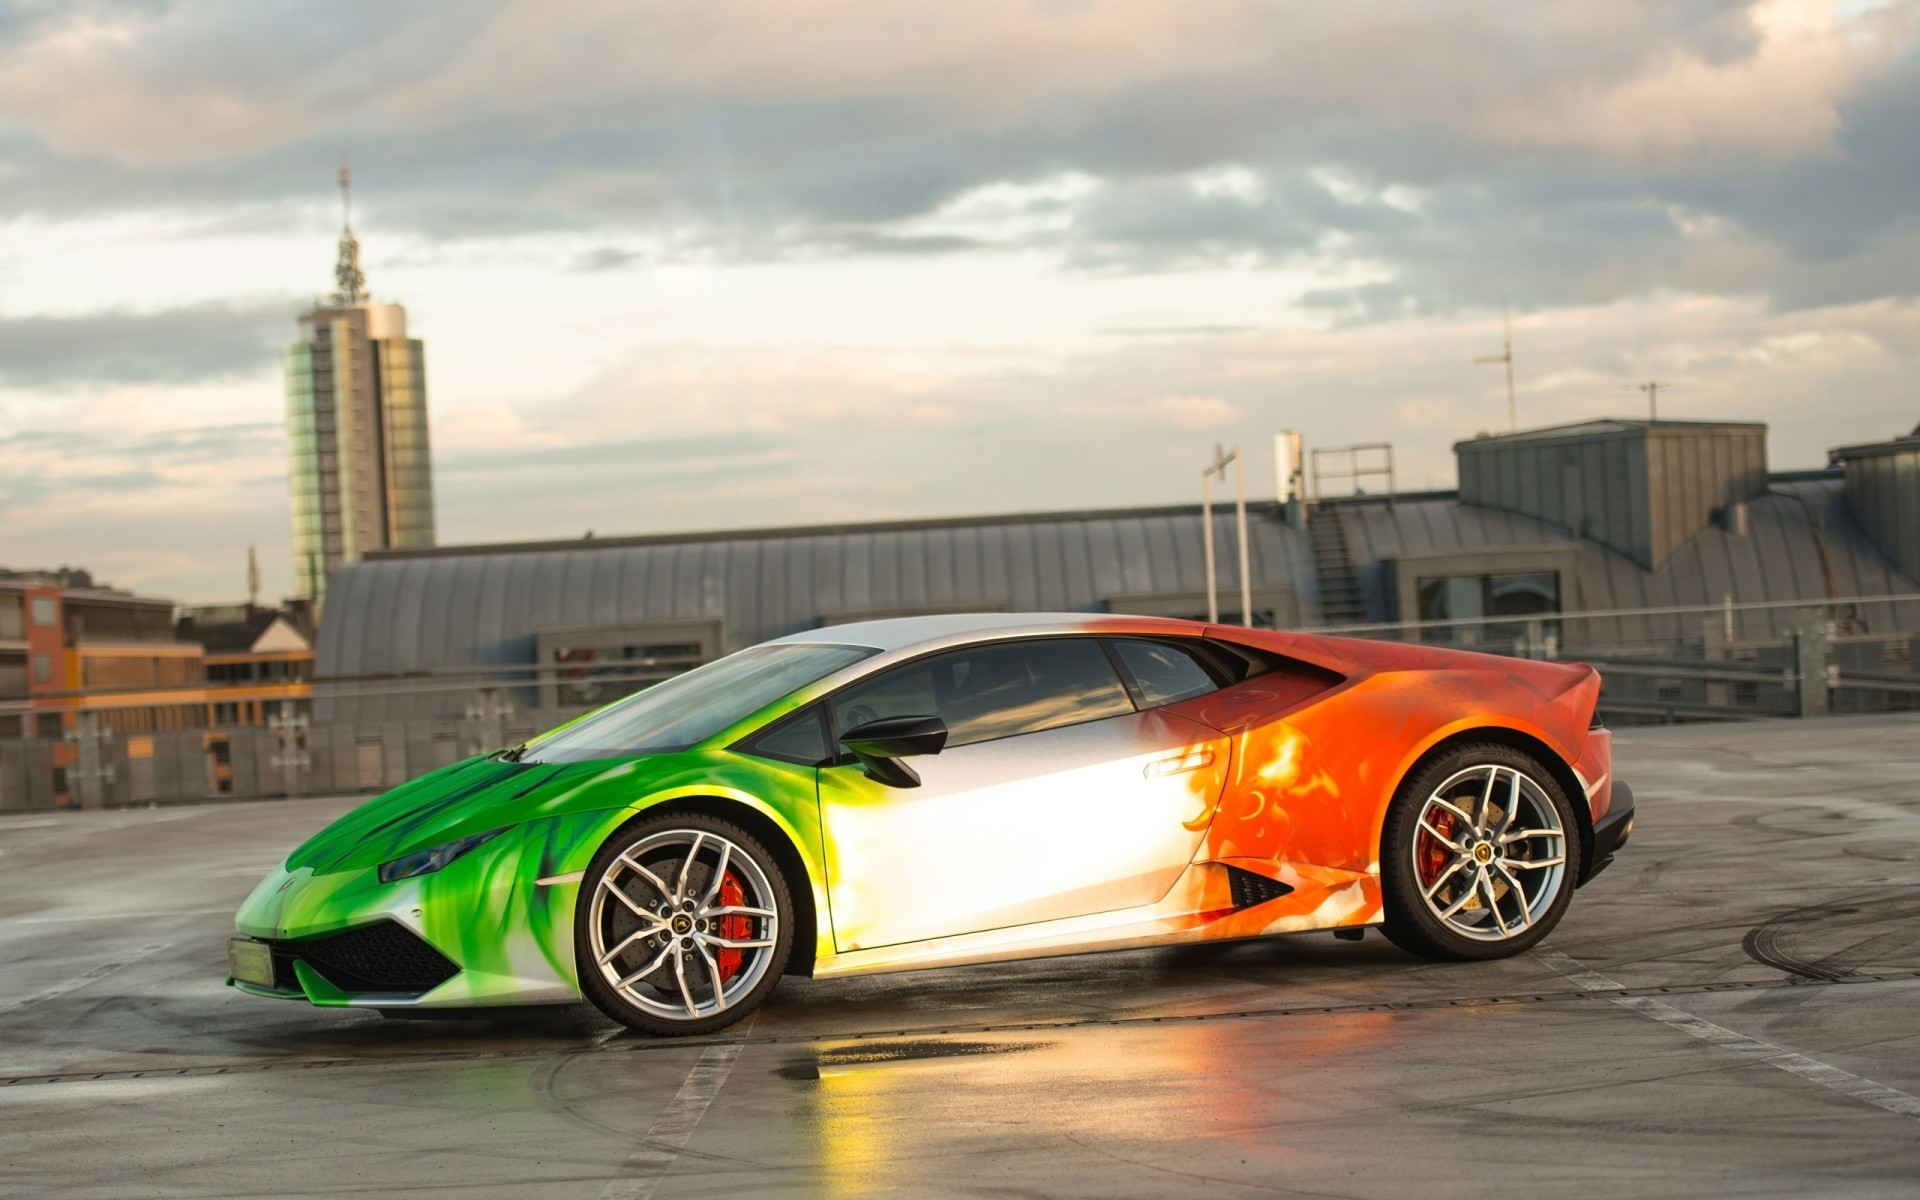 1920x1200 Lamborghini Wallpapers 2016 - HD Wallpapers Backgrounds of Your Choice